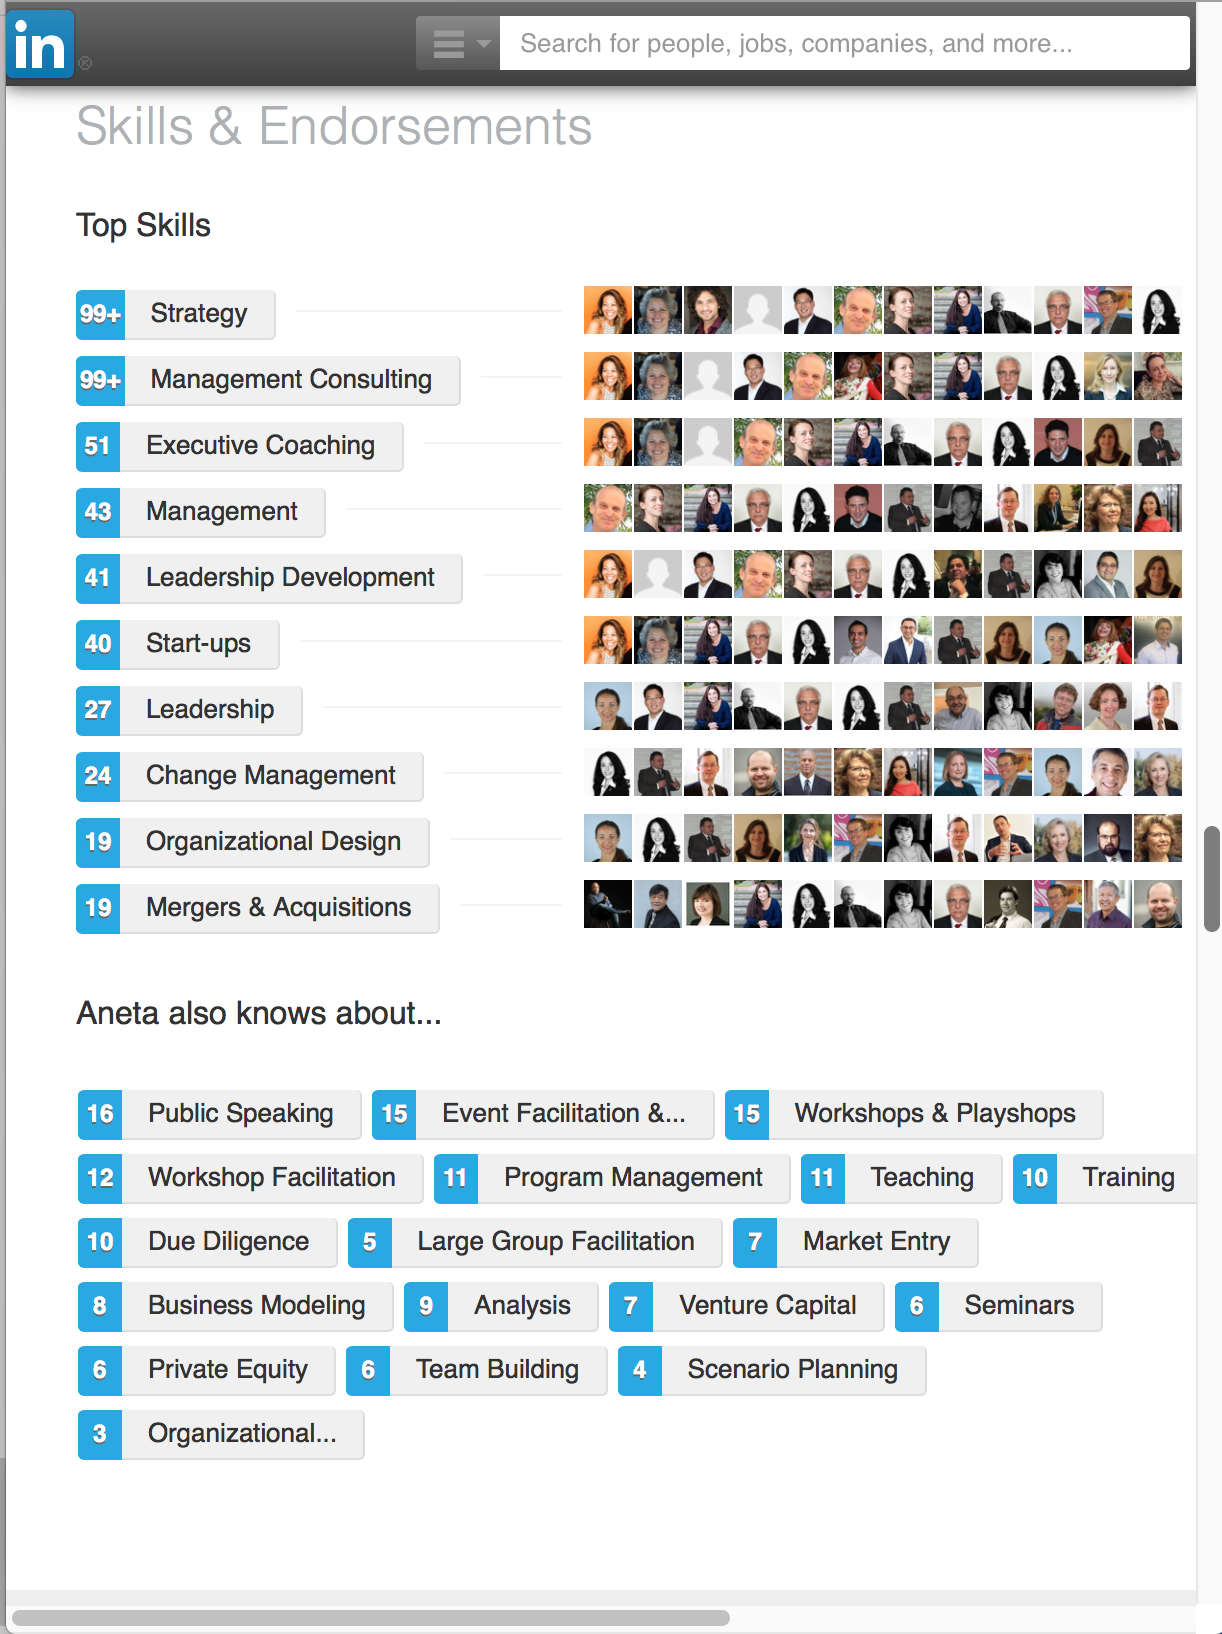 Aneta Key is most endorsed on LinkedIn for Strategy, Management Consulting, Executive Coaching, Leadership Development, Startups, Change Management, M&A, and Organizational Design.